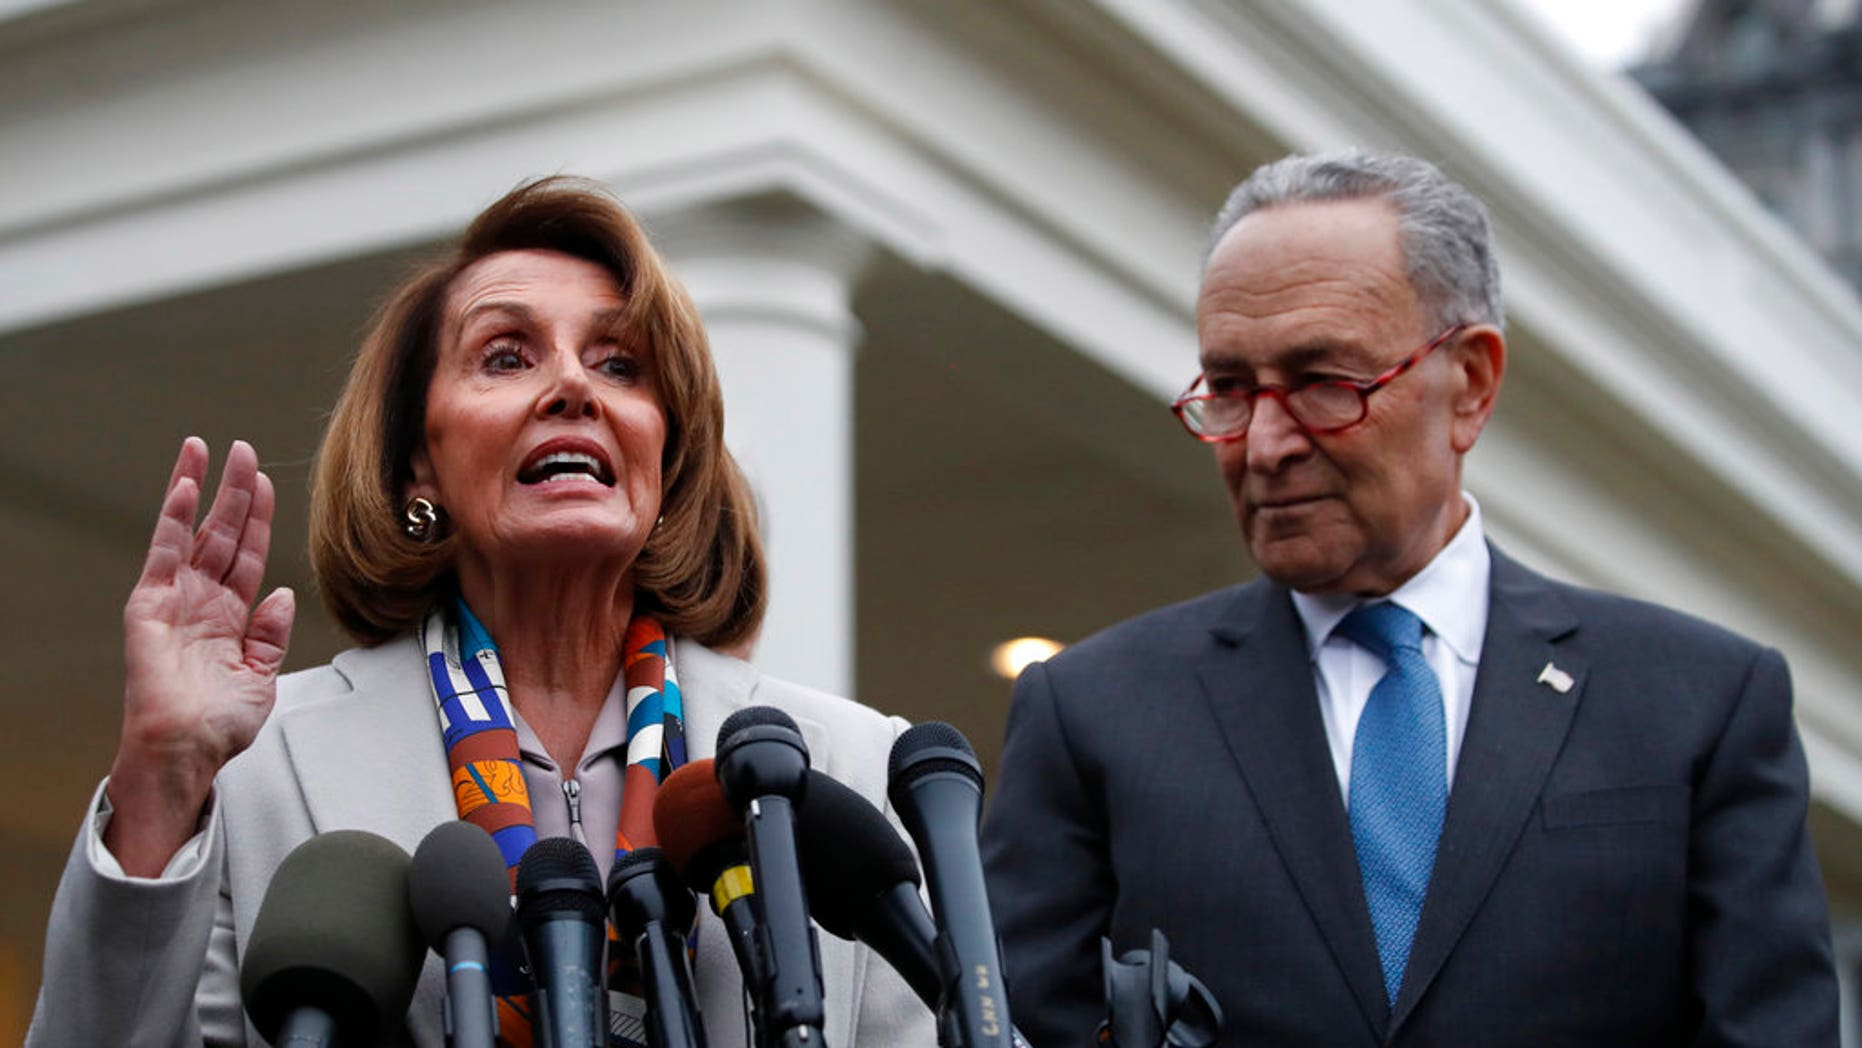 House Democratic leader Nancy Pelosi of California, left, the House Speaker-designate, and Senate Minority Leader Chuck Schumer, D-N.Y., speak to the media after meeting with President Donald Trump, Wednesday, Jan. 2, 2019, on border security at the White House in Washington. (AP Photo/Jacquelyn Martin)